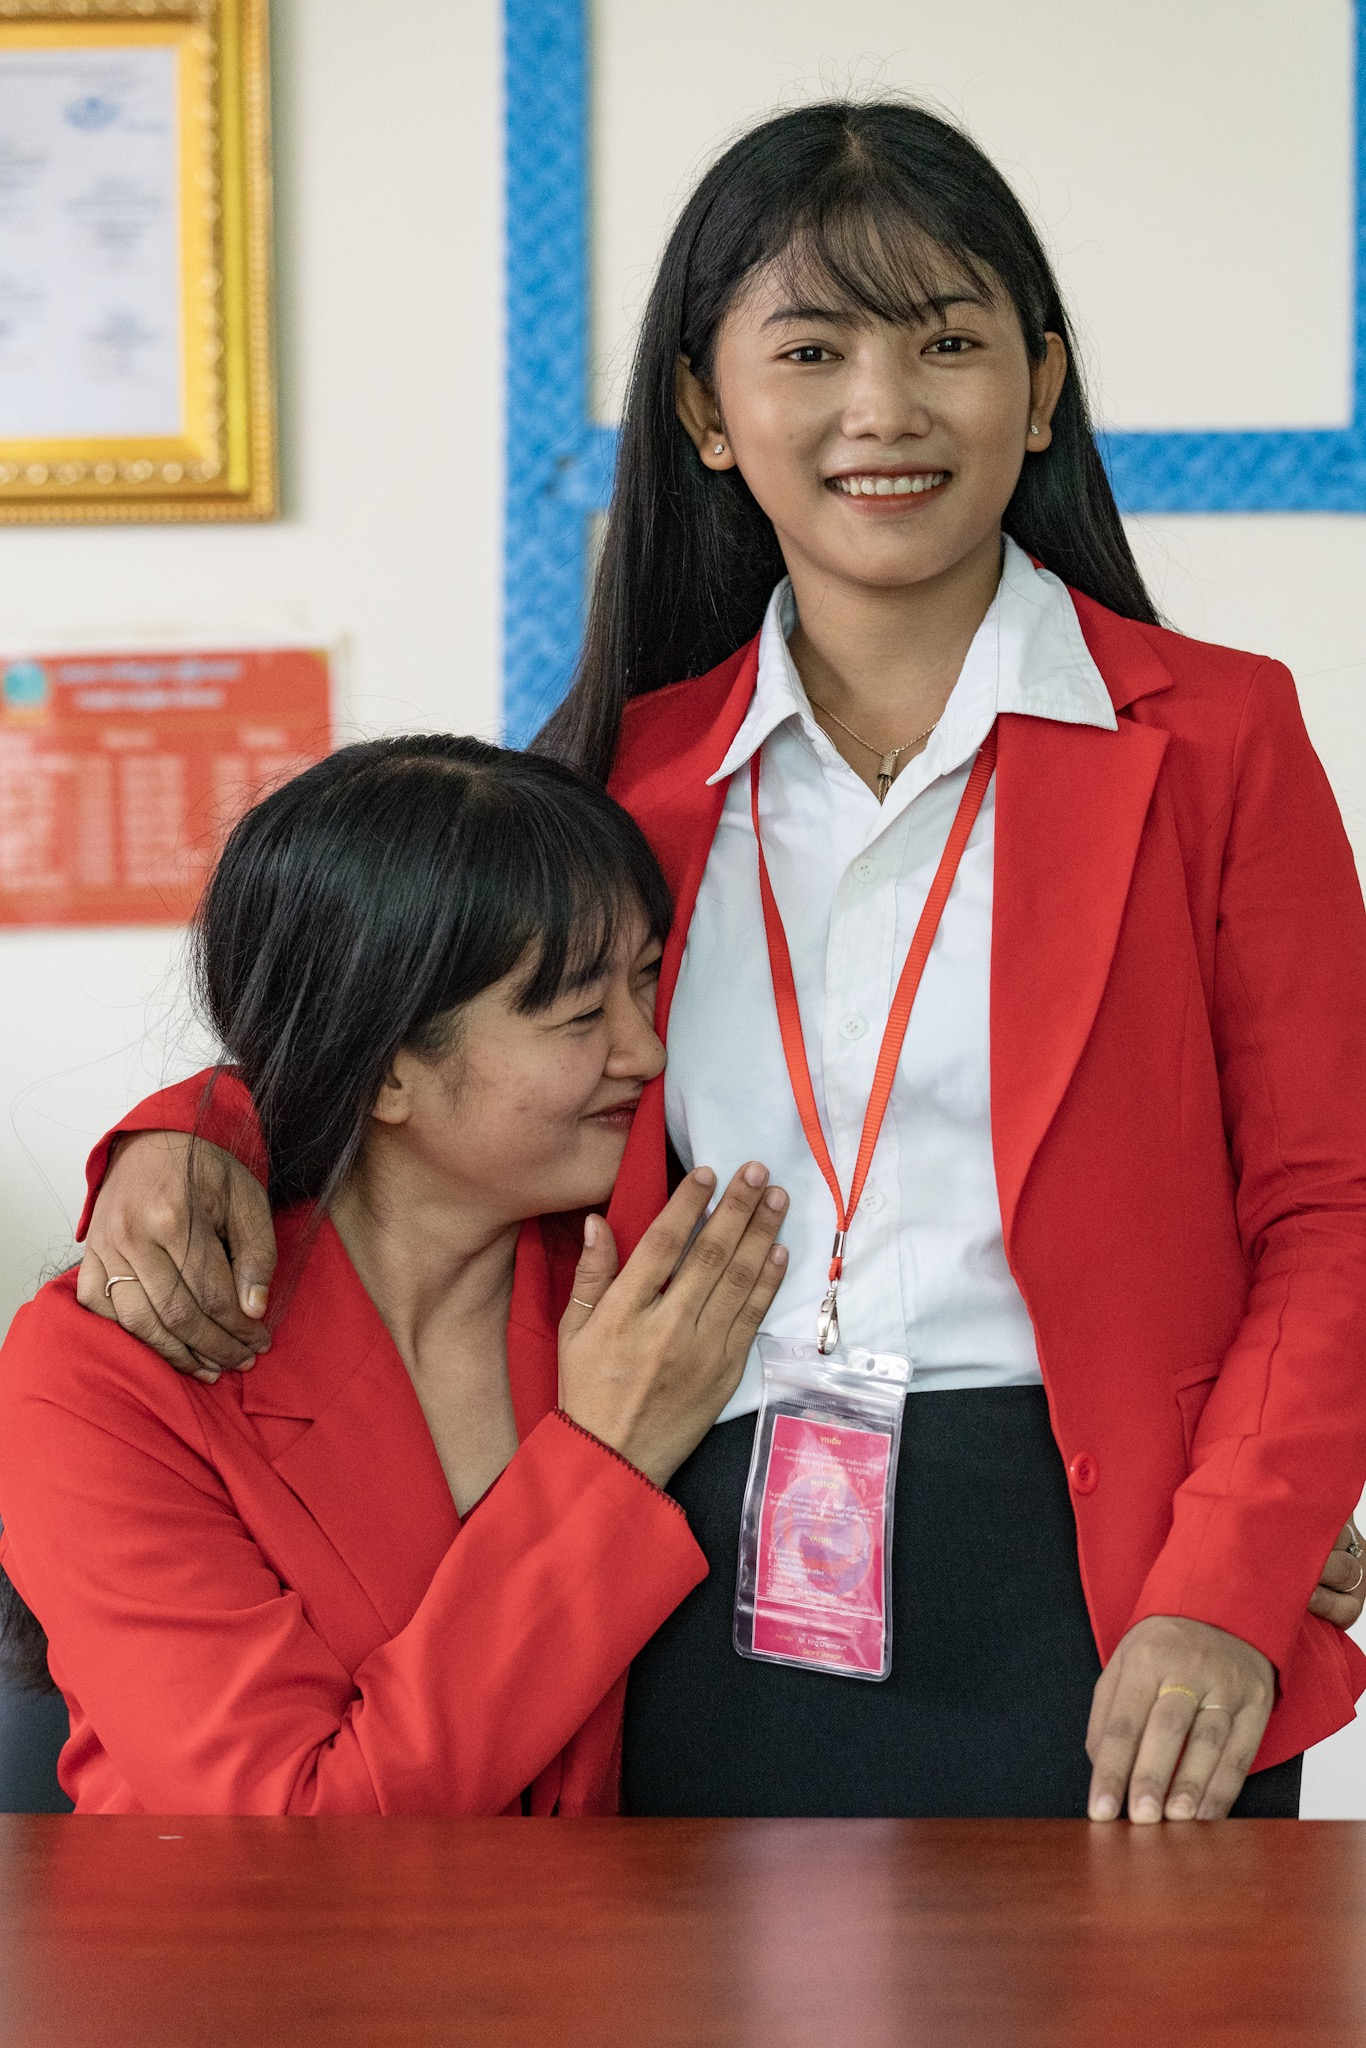 These Asia's Hope grads are now not just great friends but proud co-workers.